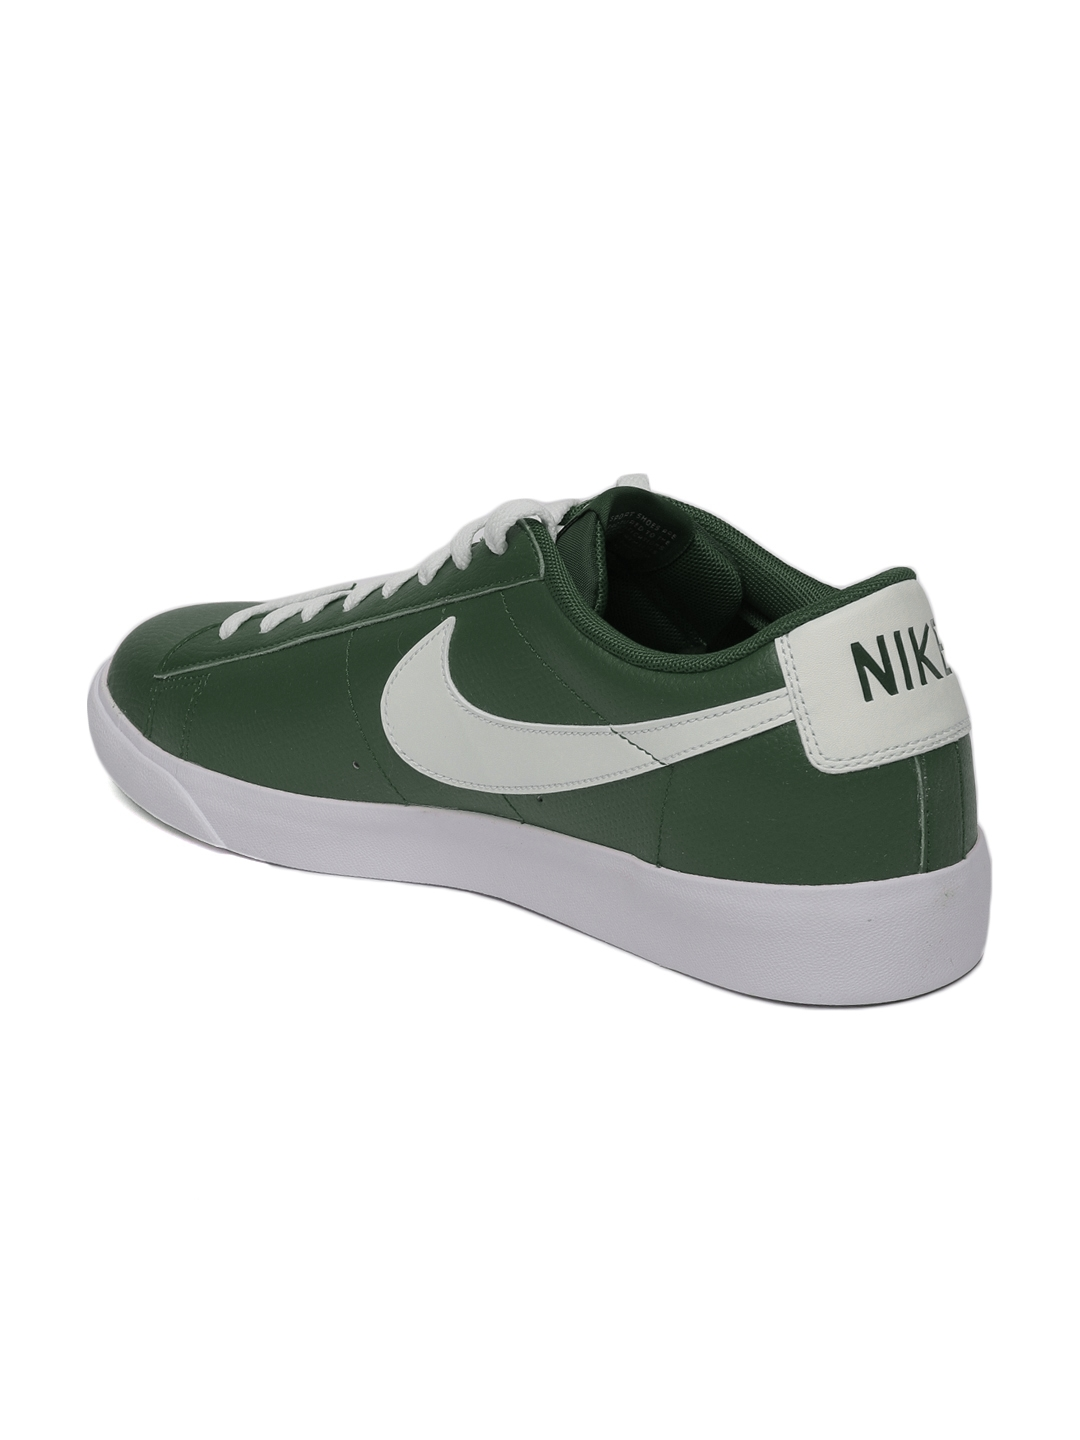 newest ac59b 059d0 Nike Men Green Blazer Low Leather Sneakers